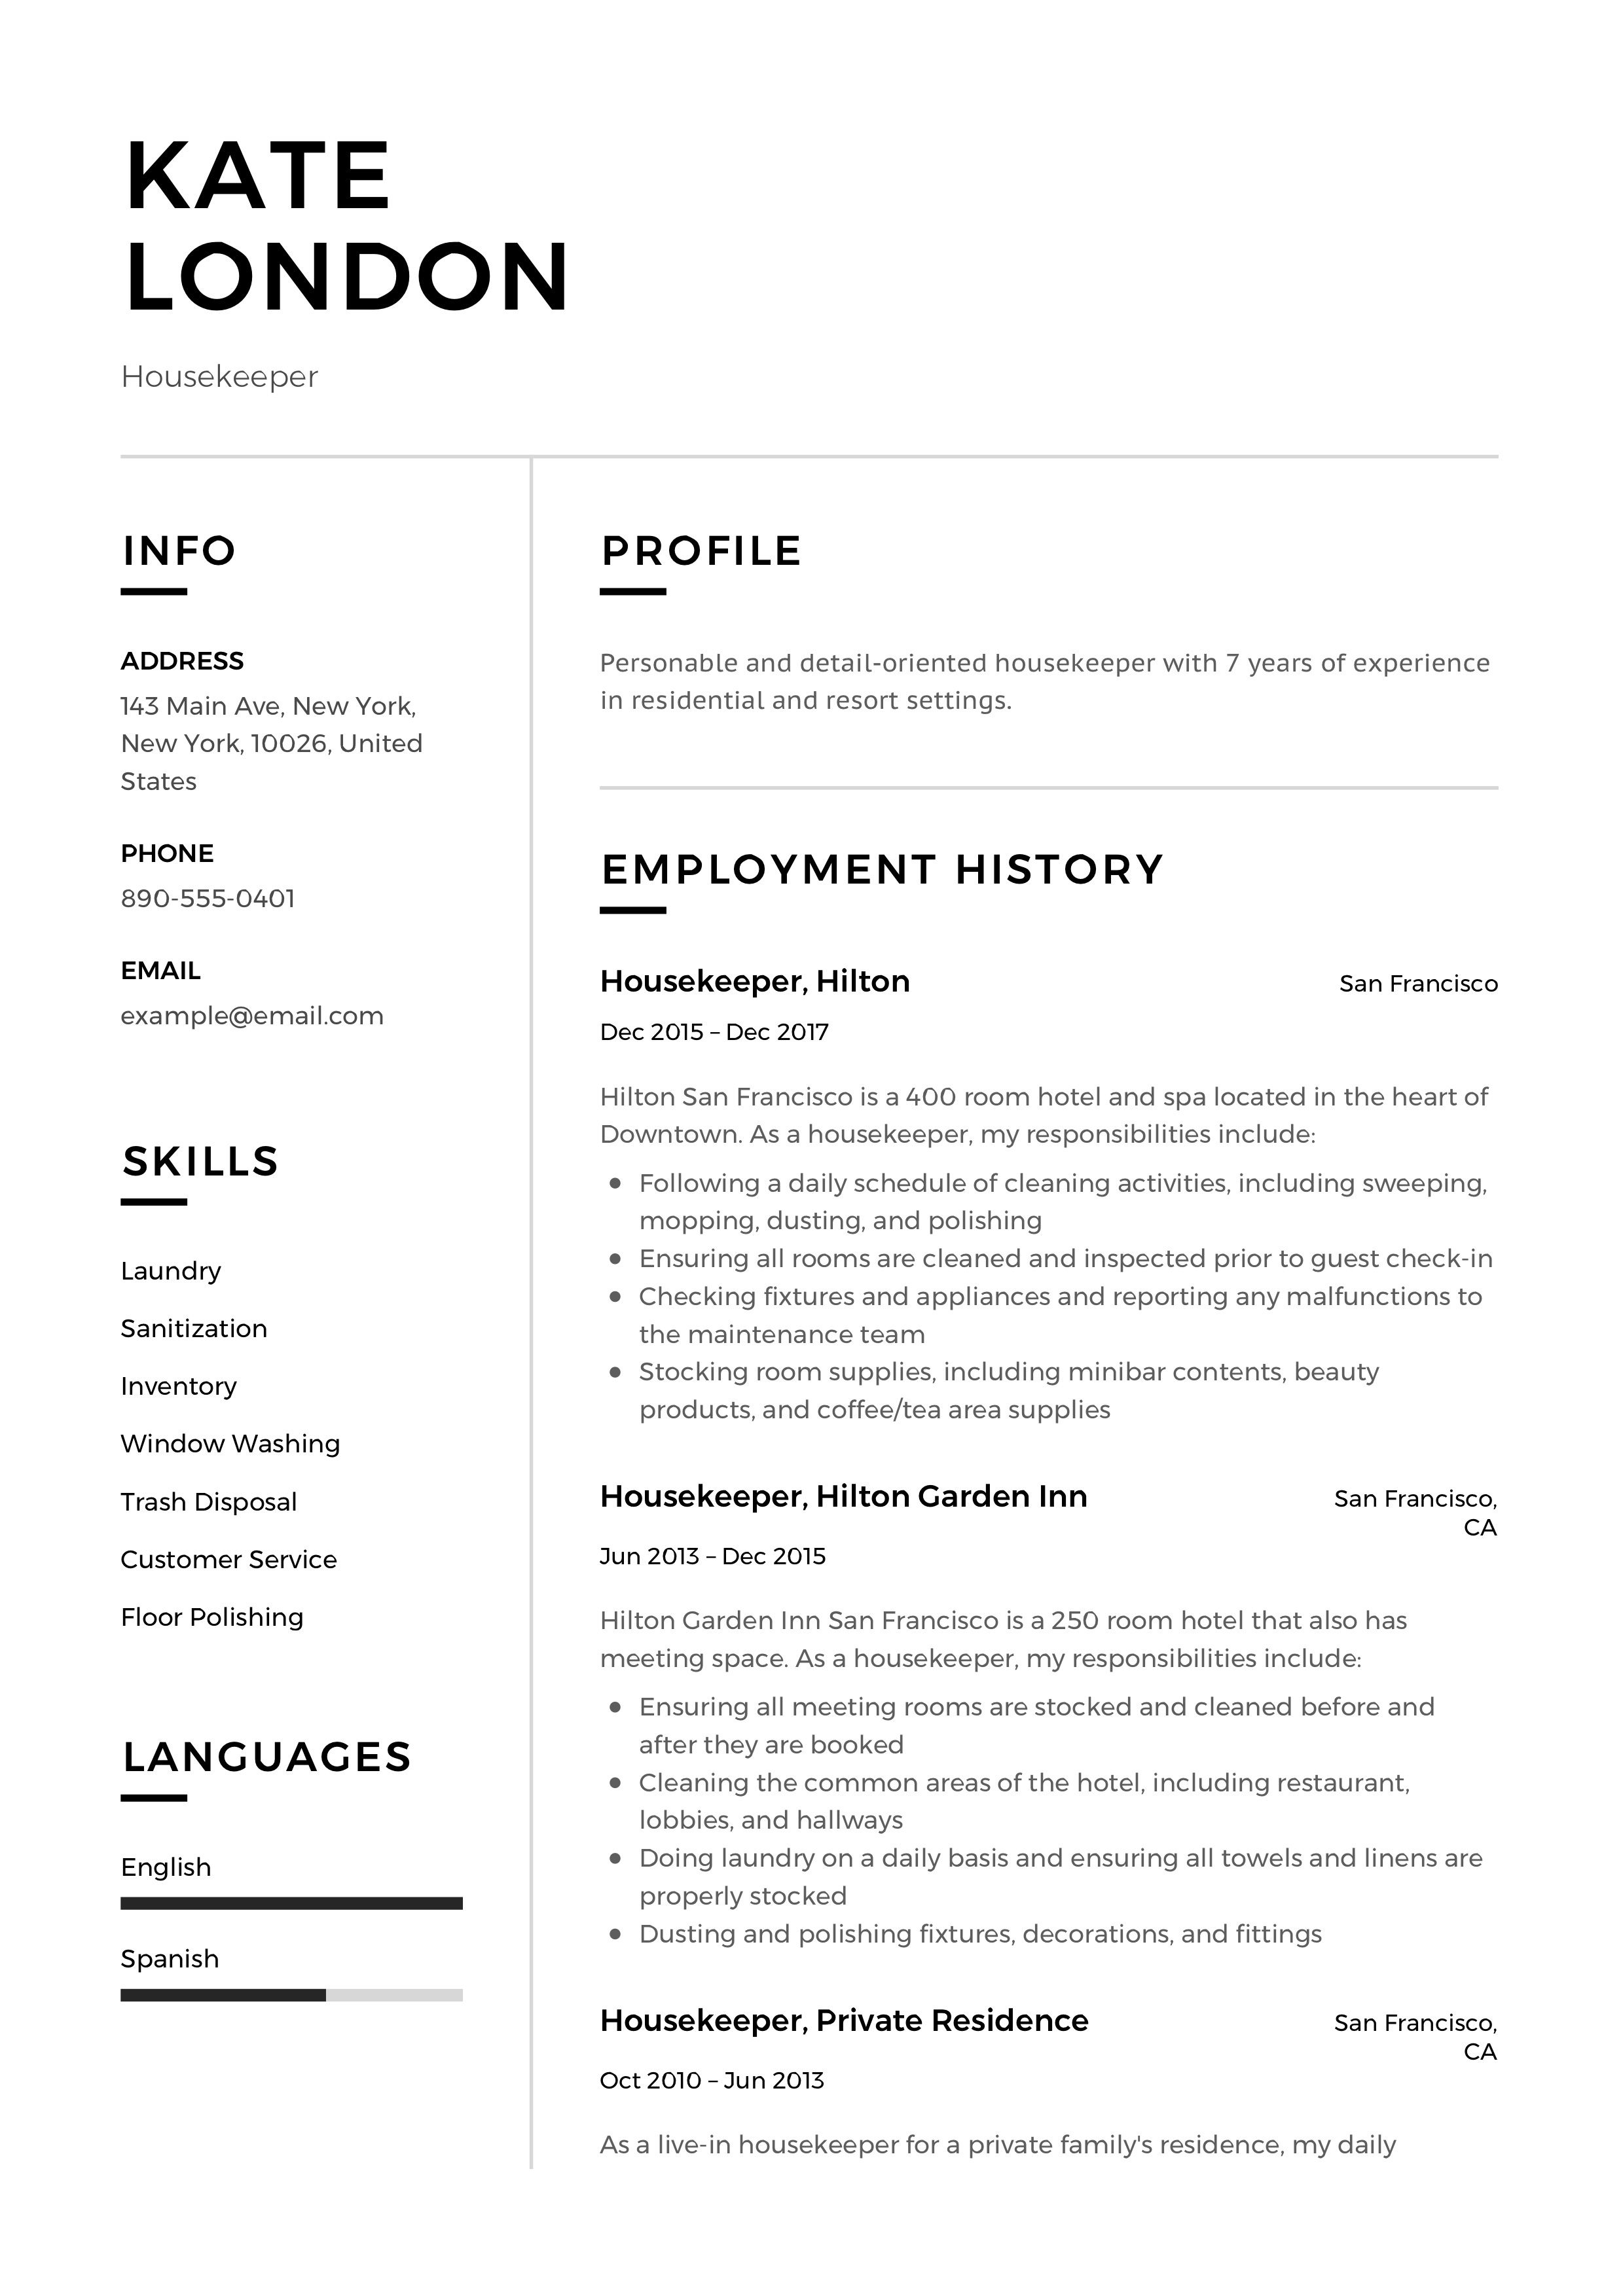 housekeeper resume, template, design, tips, examples, free sample resume for senior management position cv template professional download main skills to put on a